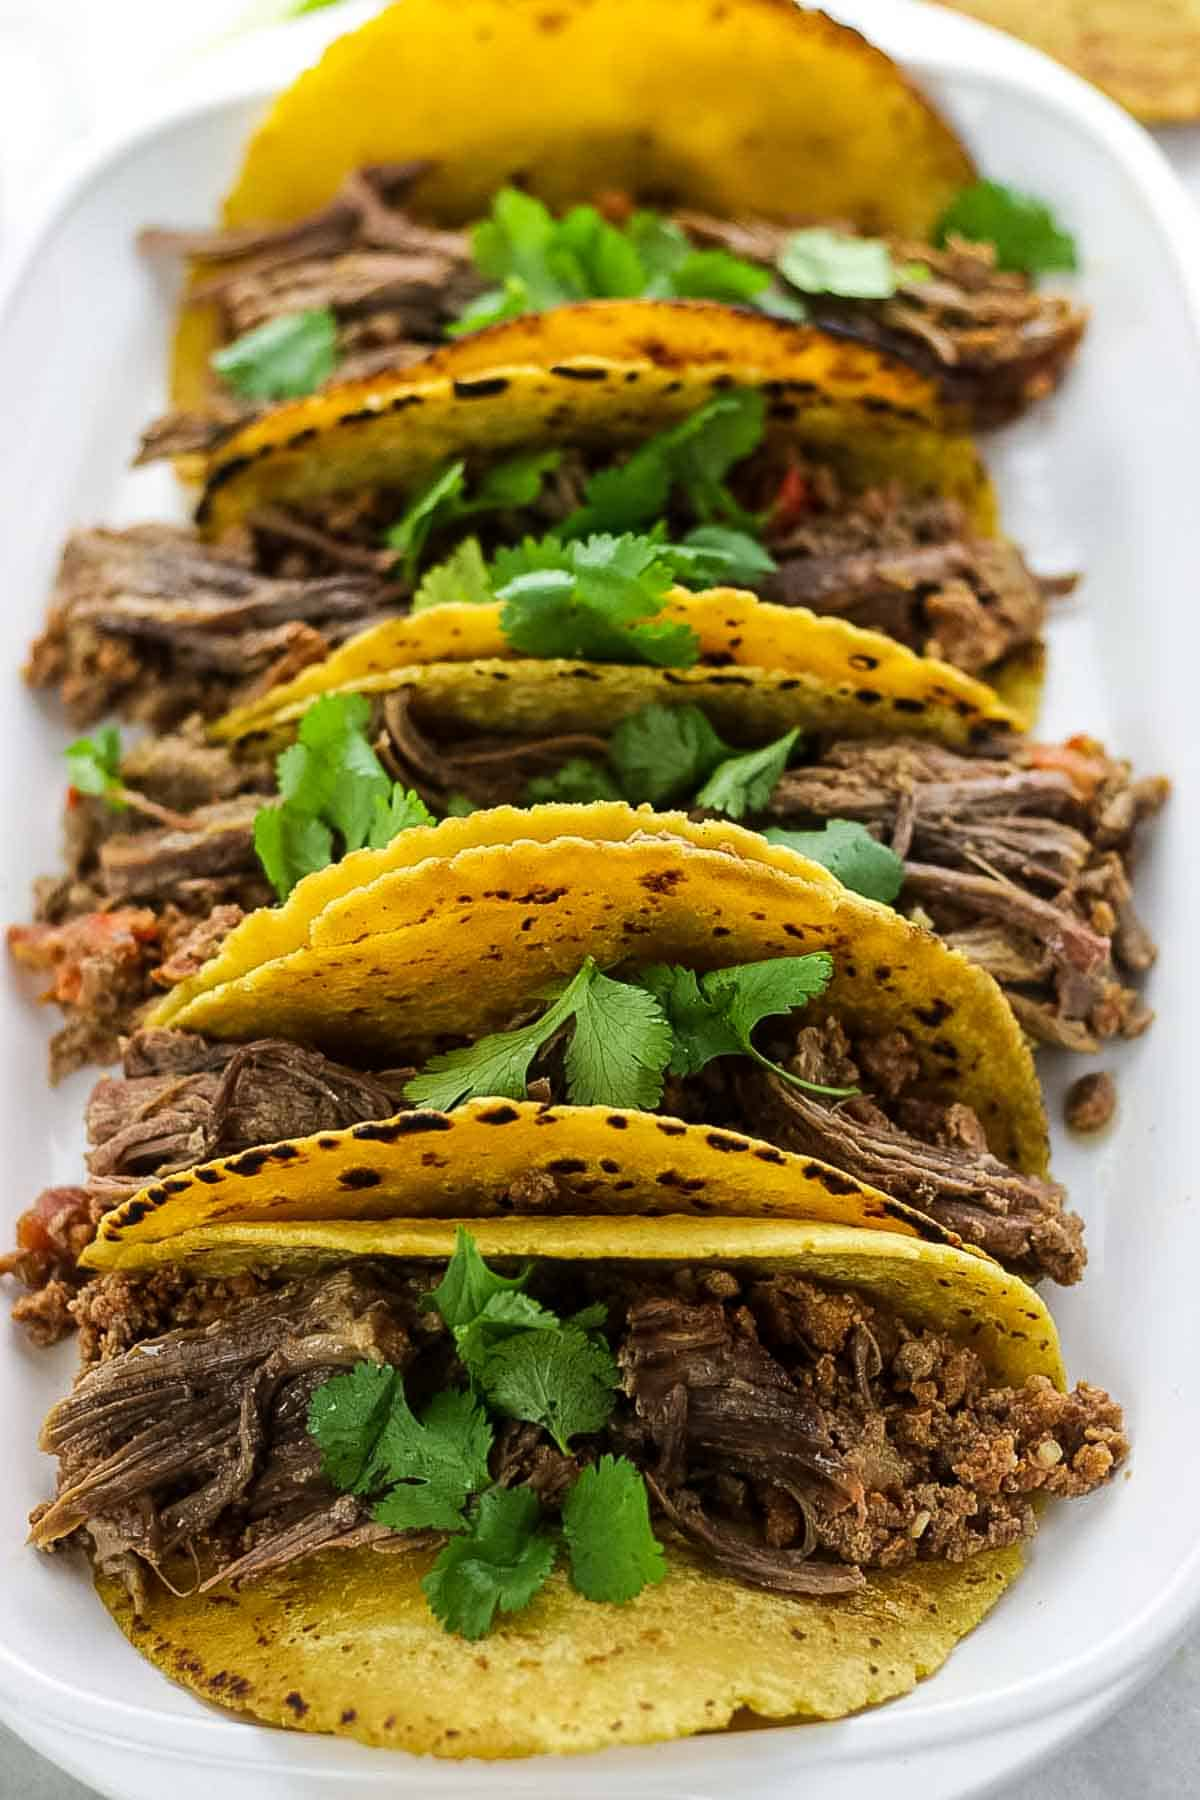 Shredded Beef Tacos in corn tortillas with cilantro